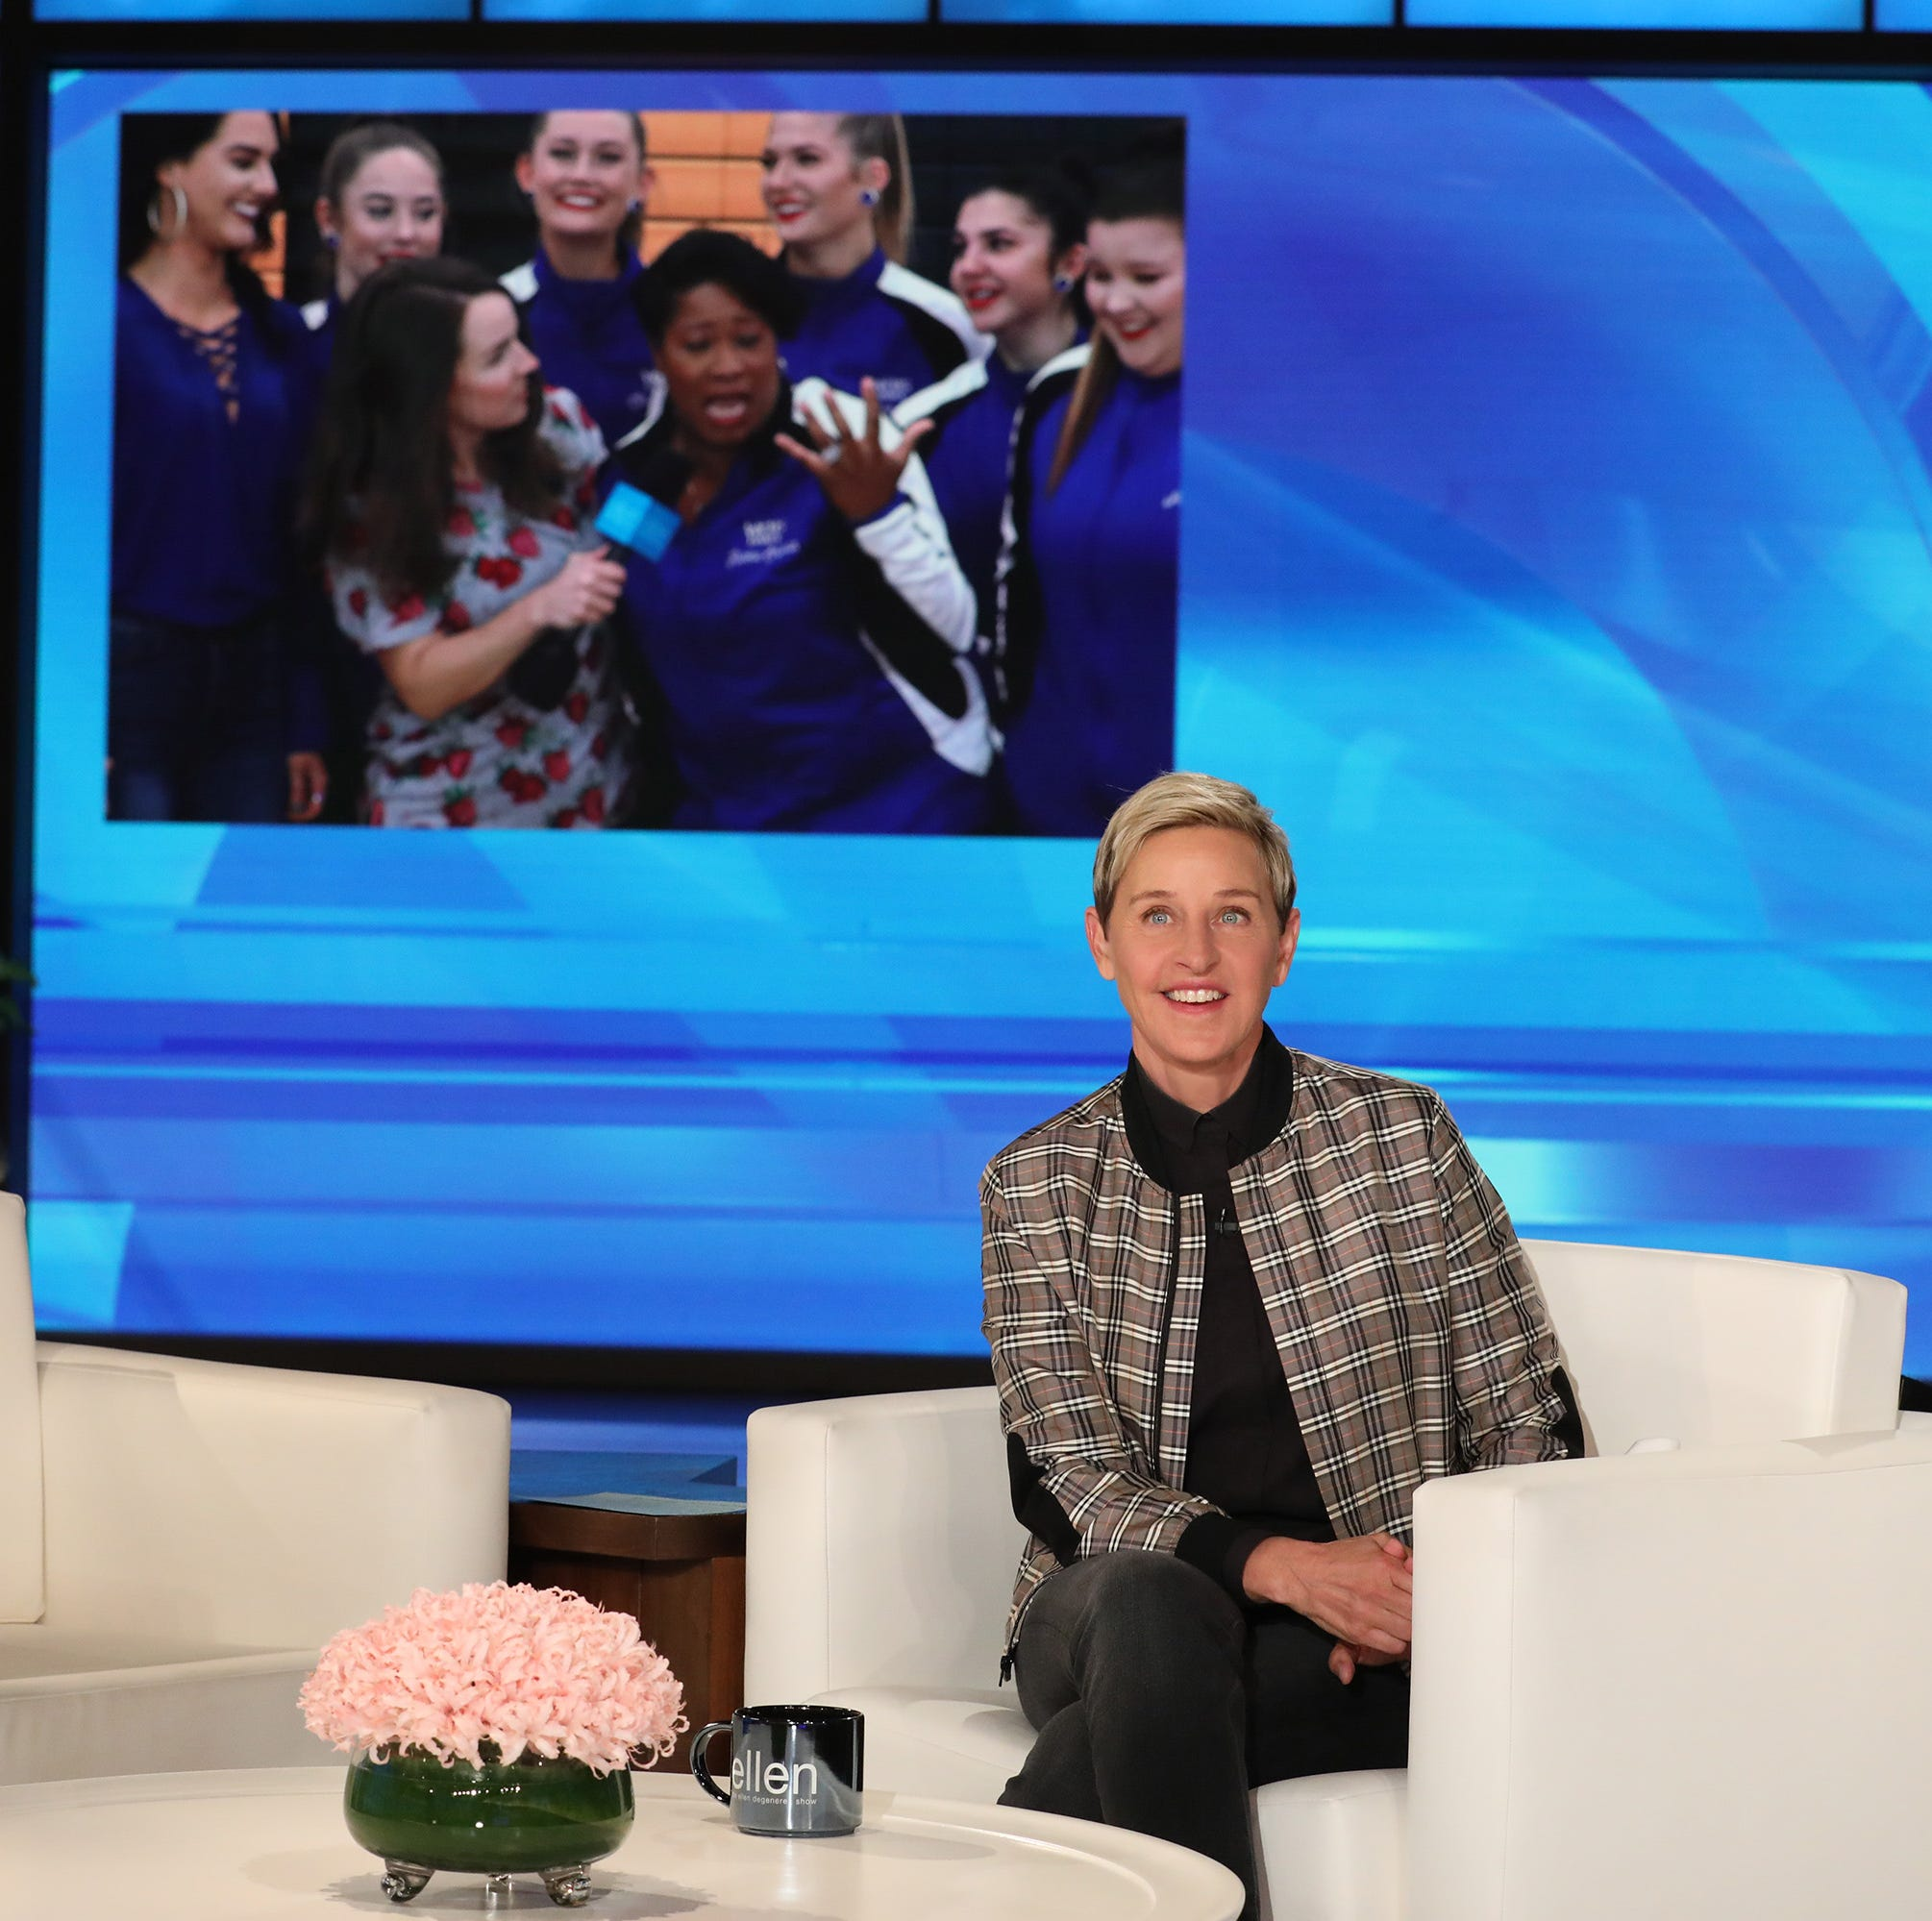 Wilson County dance team, assistant principal get Ellen DeGeneres' attention in a big way